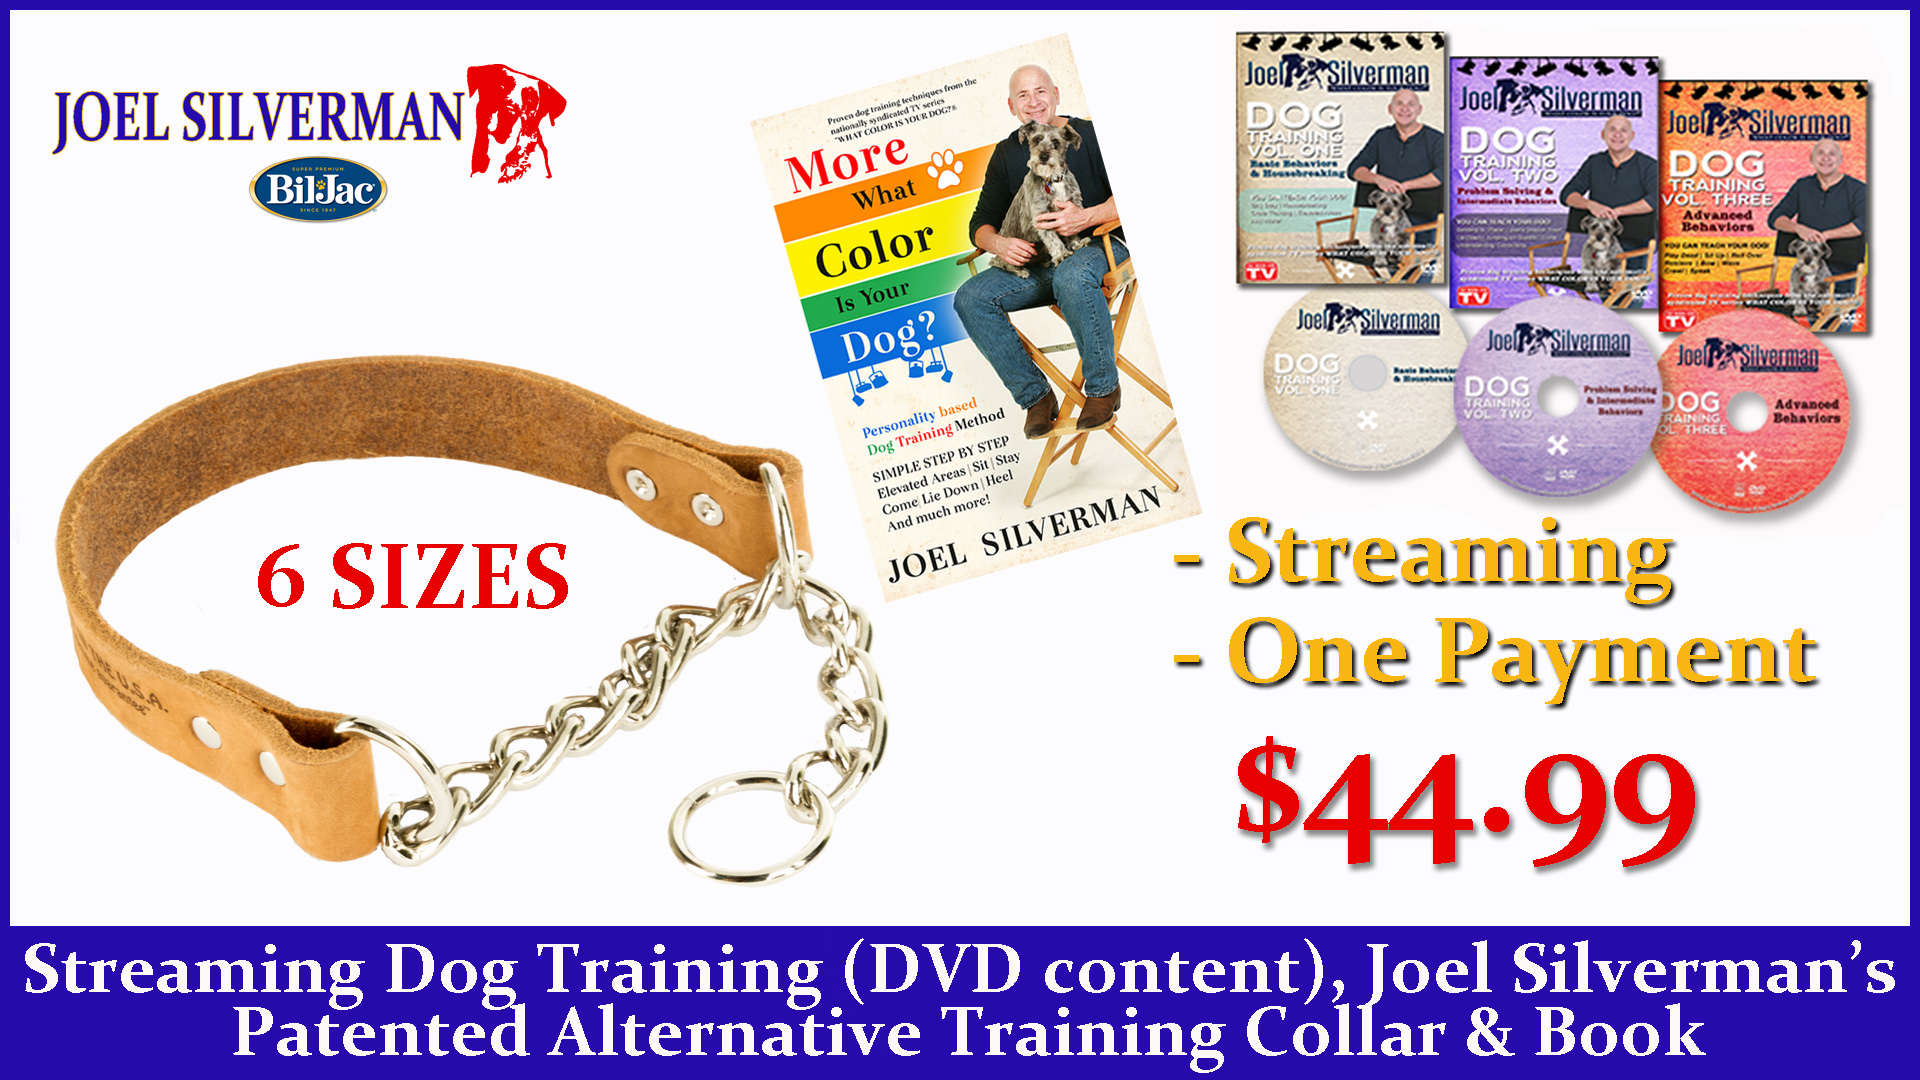 Streaming Dog Training – Basic, Intermediate, And Advanced + Alternative Training Collar + More What Color Is Your Dog?